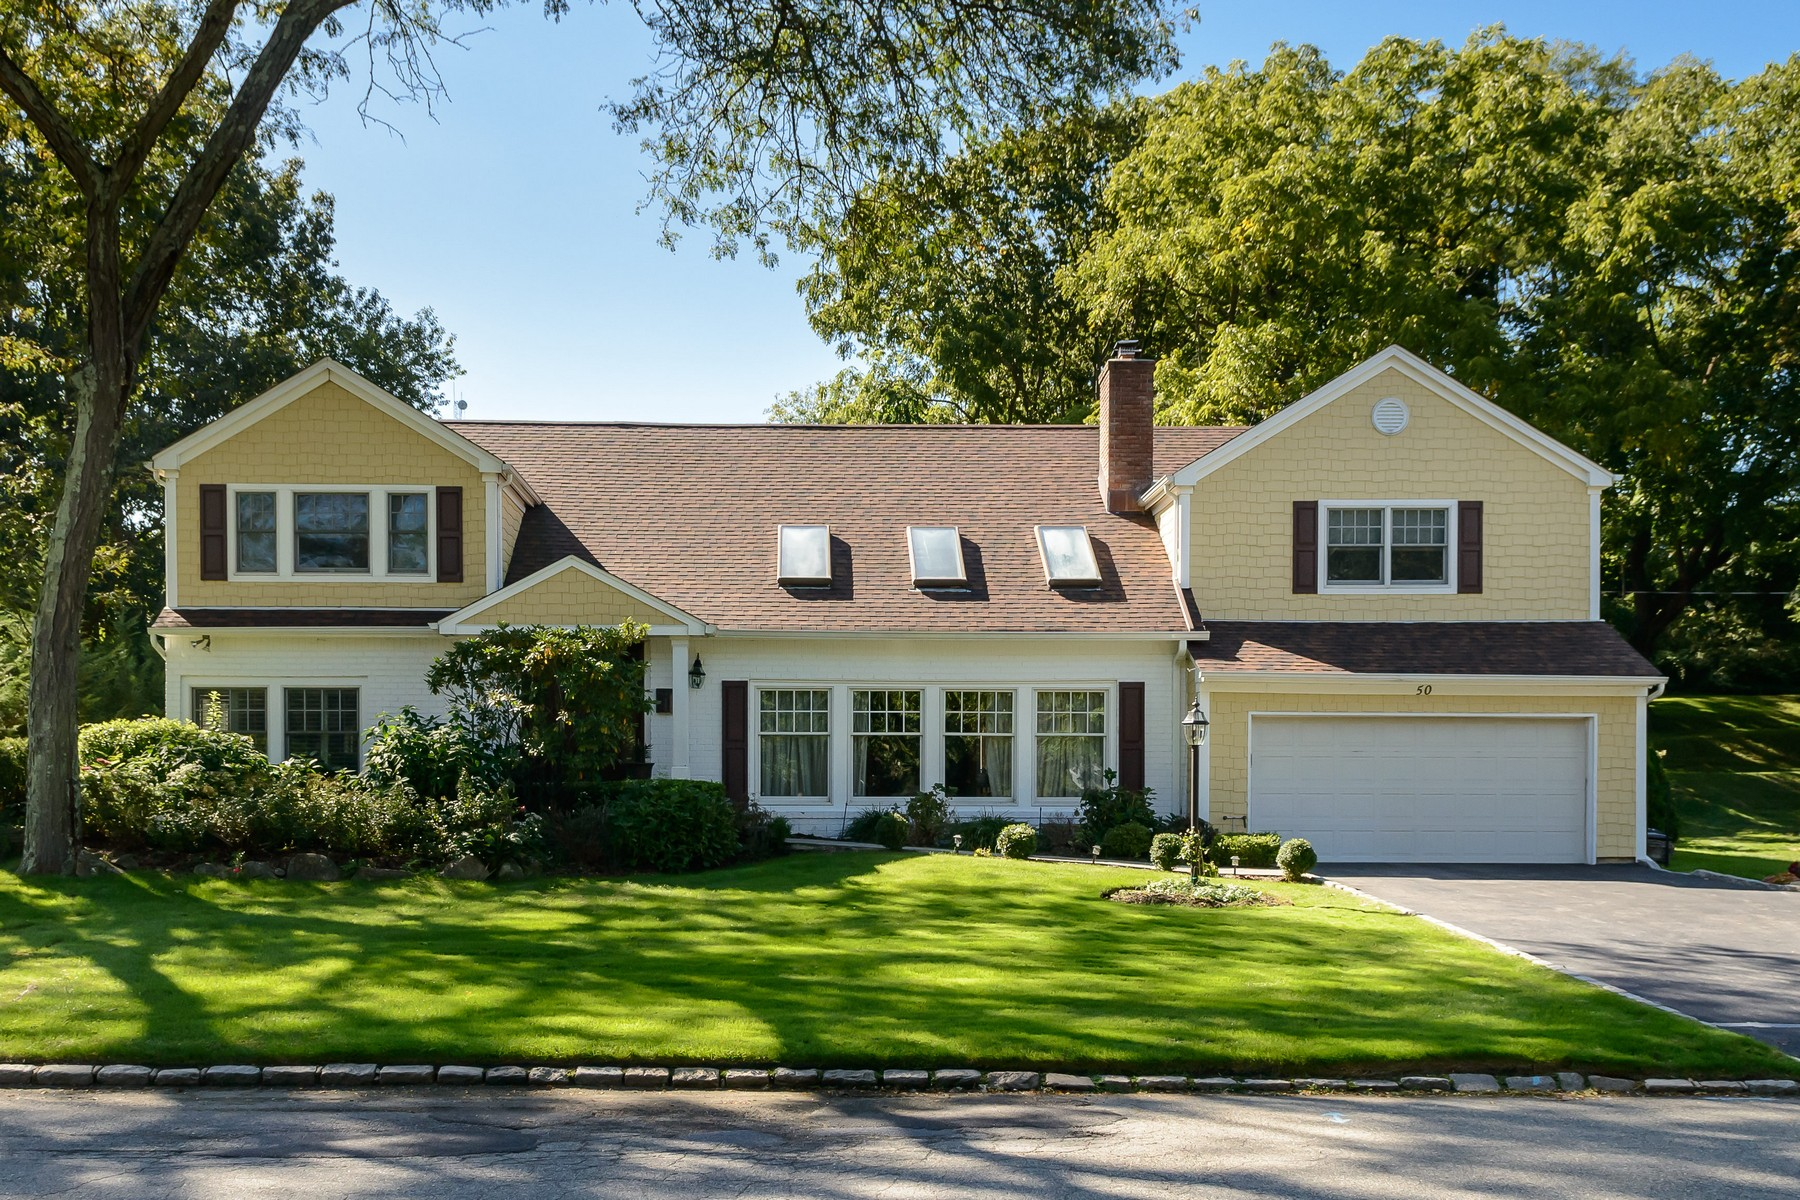 Single Family Home for Sale at Colonial 50 Walnut Dr East Hills, New York, 11576 United States